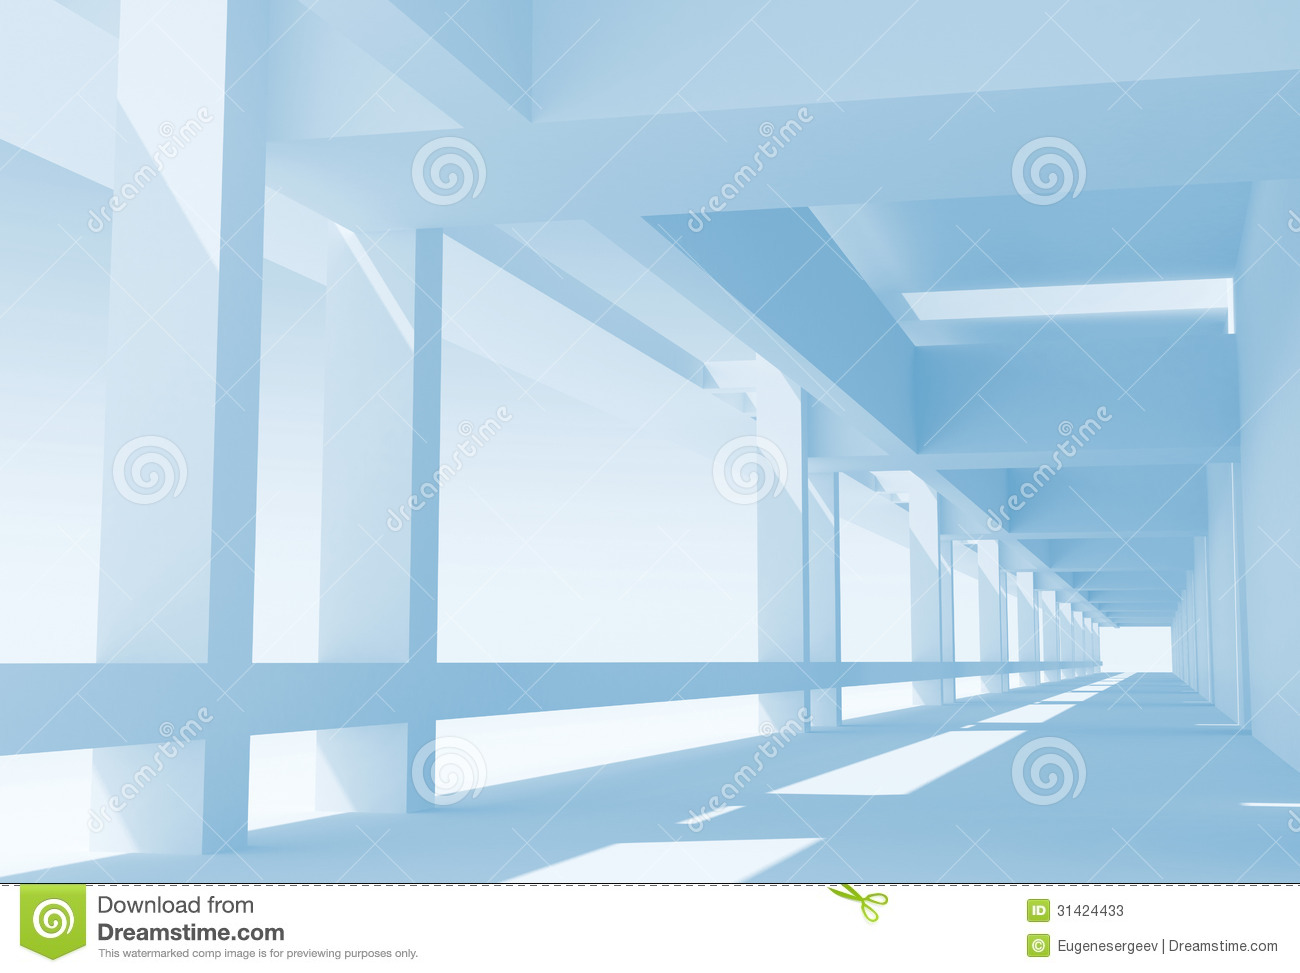 Blueprint Wallpaper Iphone 6 Abstract Architecture Blue Background Stock Illustration